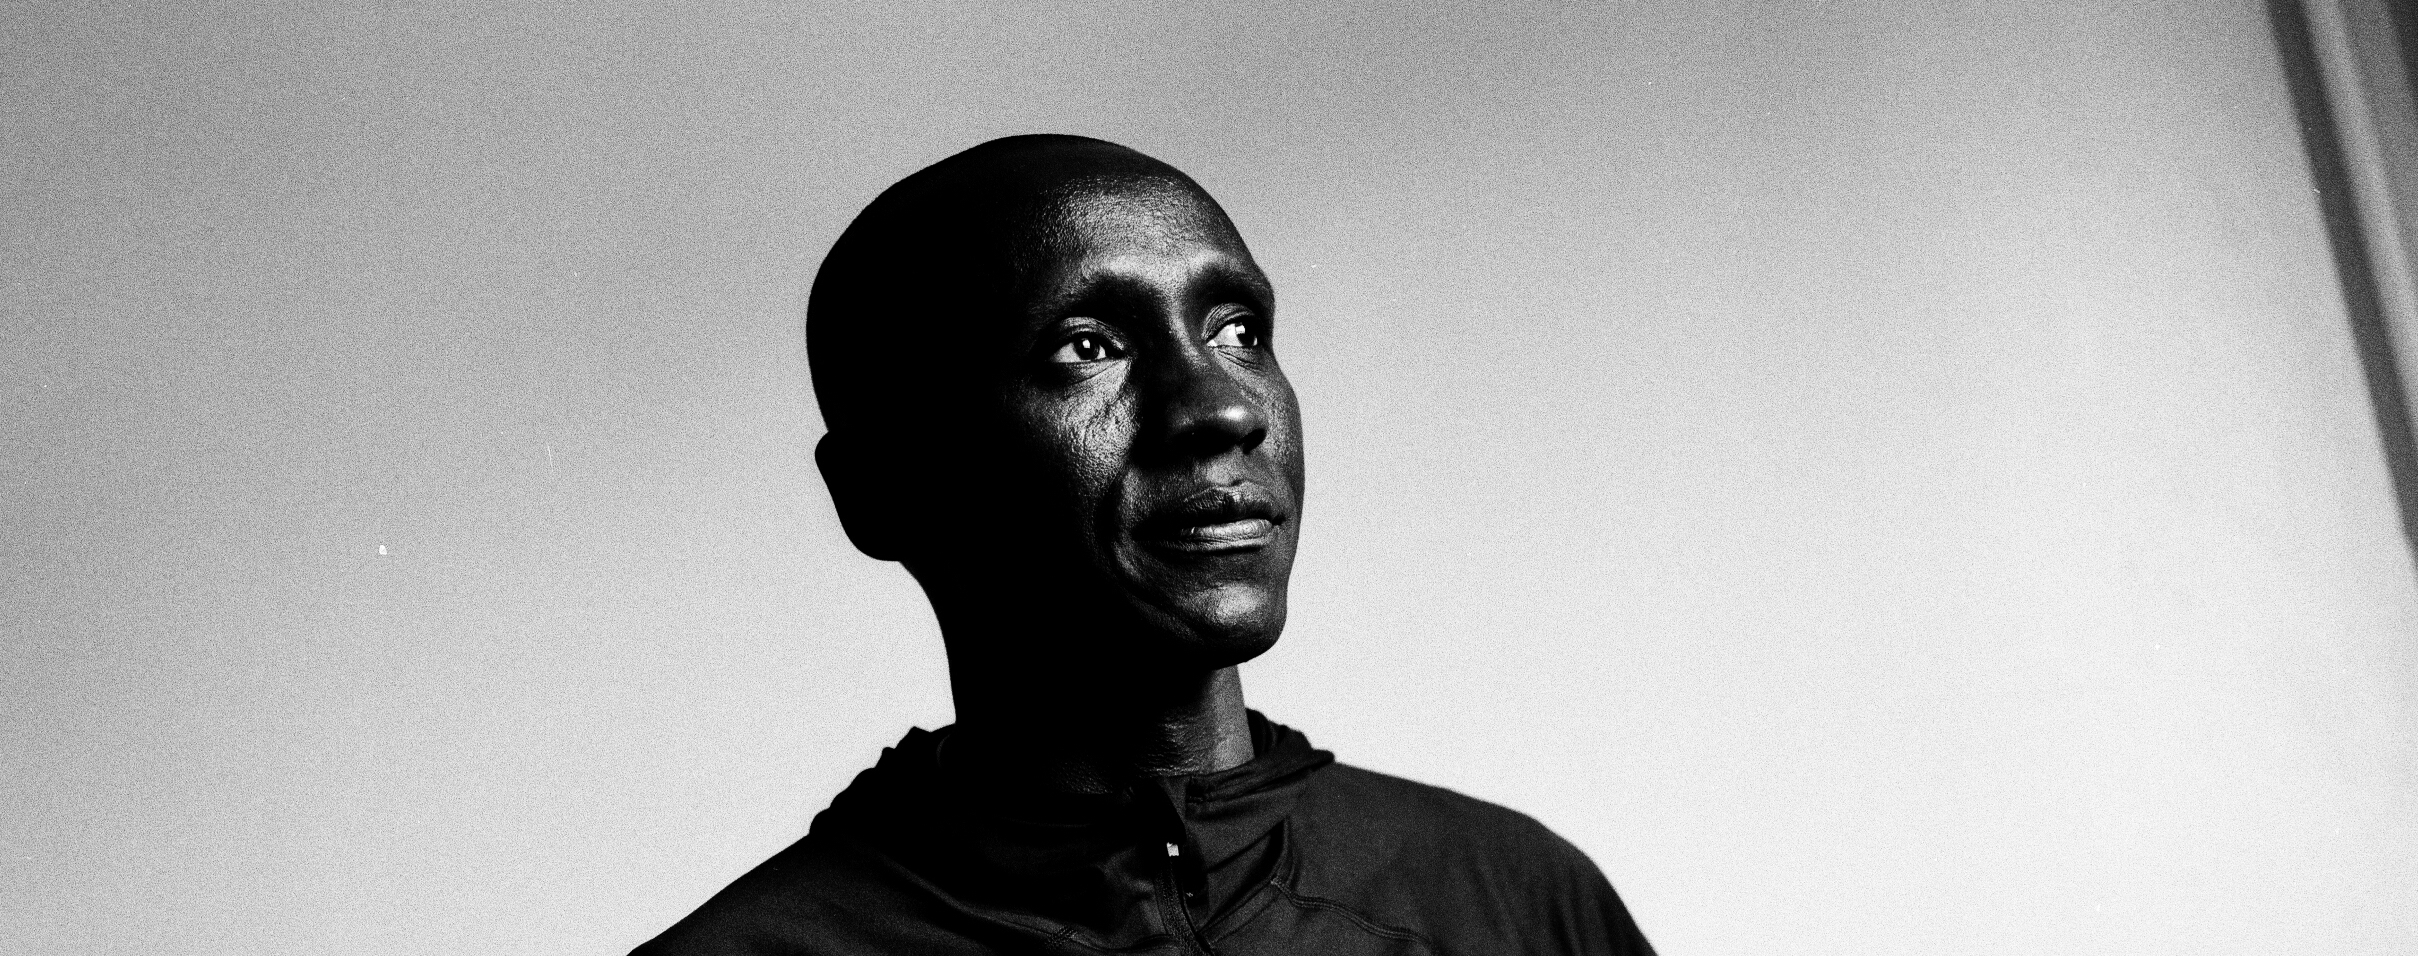 The story of Benjamin Kipkurui Cheruiyot by Alec McLeish